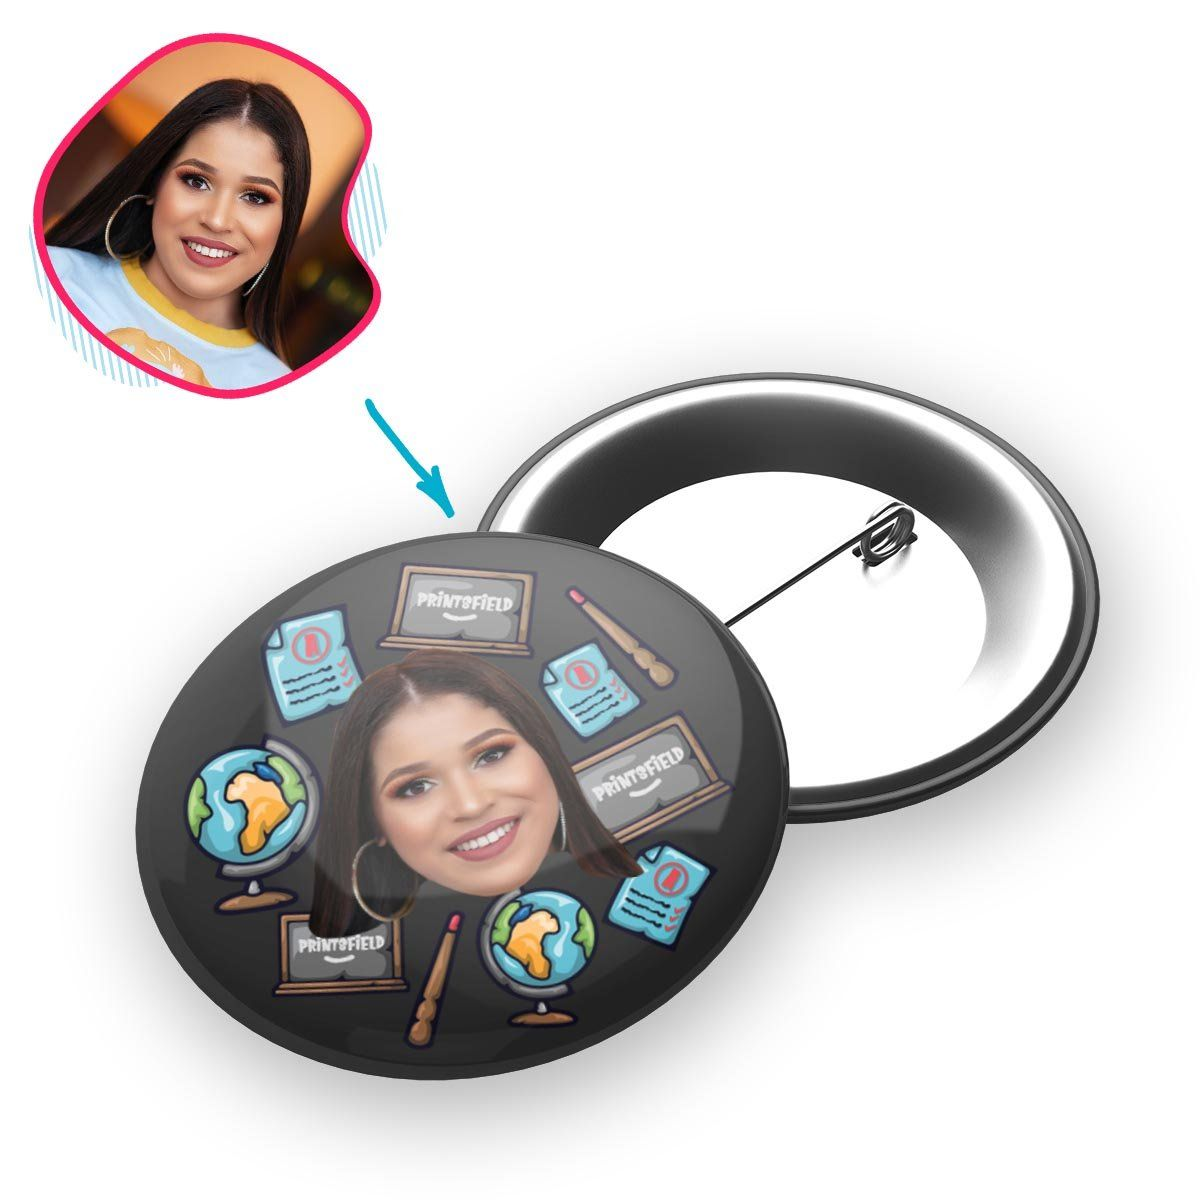 Dark Teacher personalized pin with photo of face printed on it